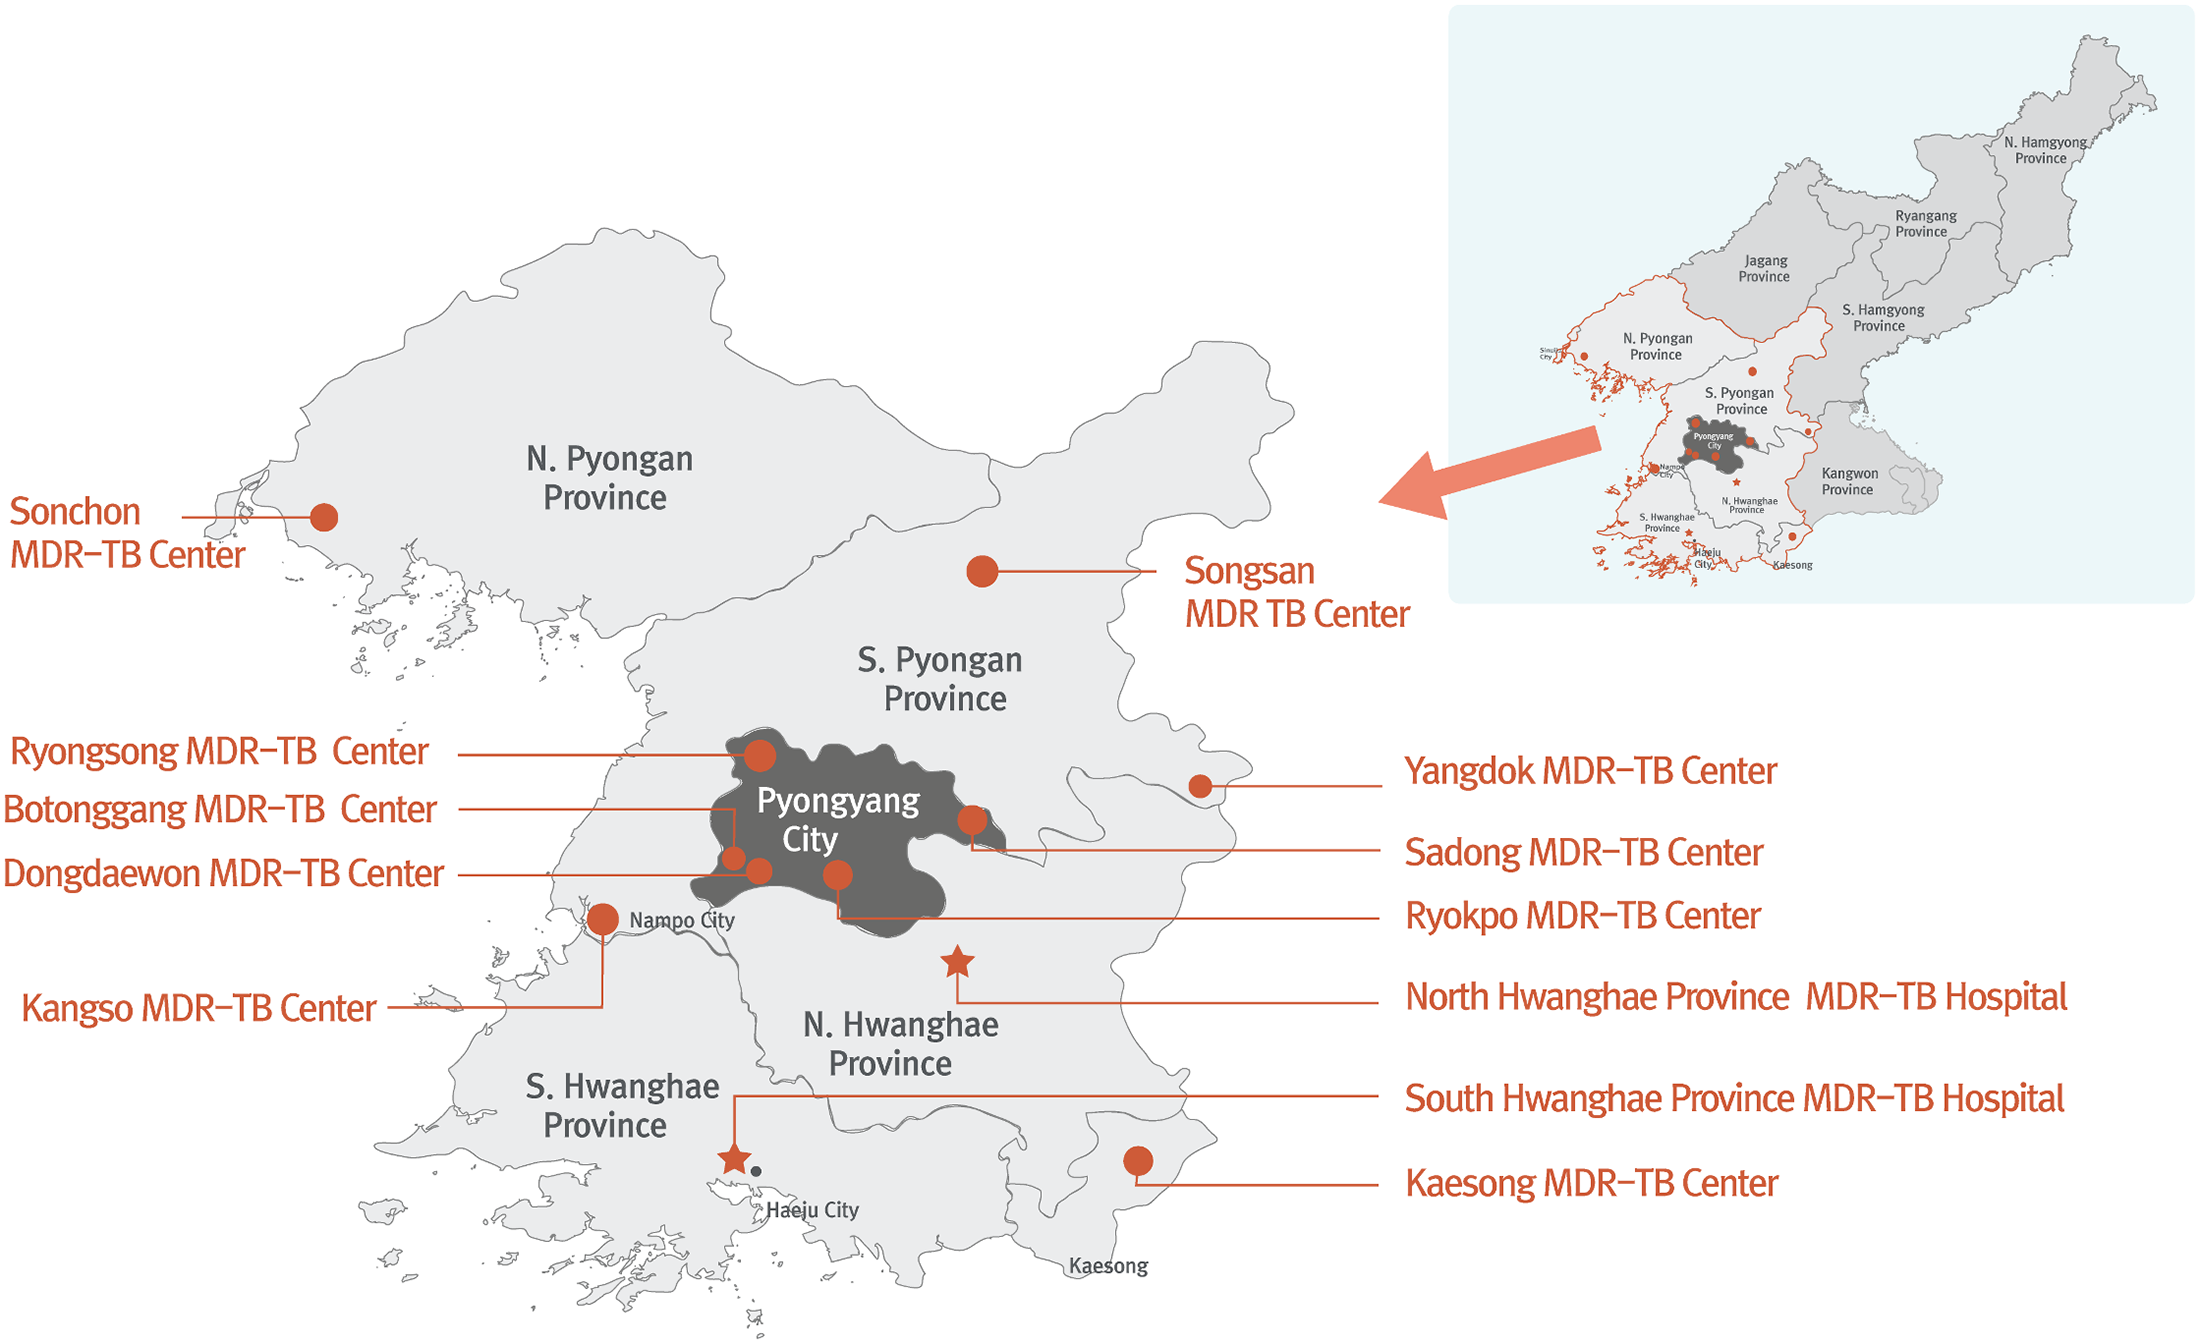 DPRK MDR TB treatment centers supported by the Eugene Bell Foundation (2015).